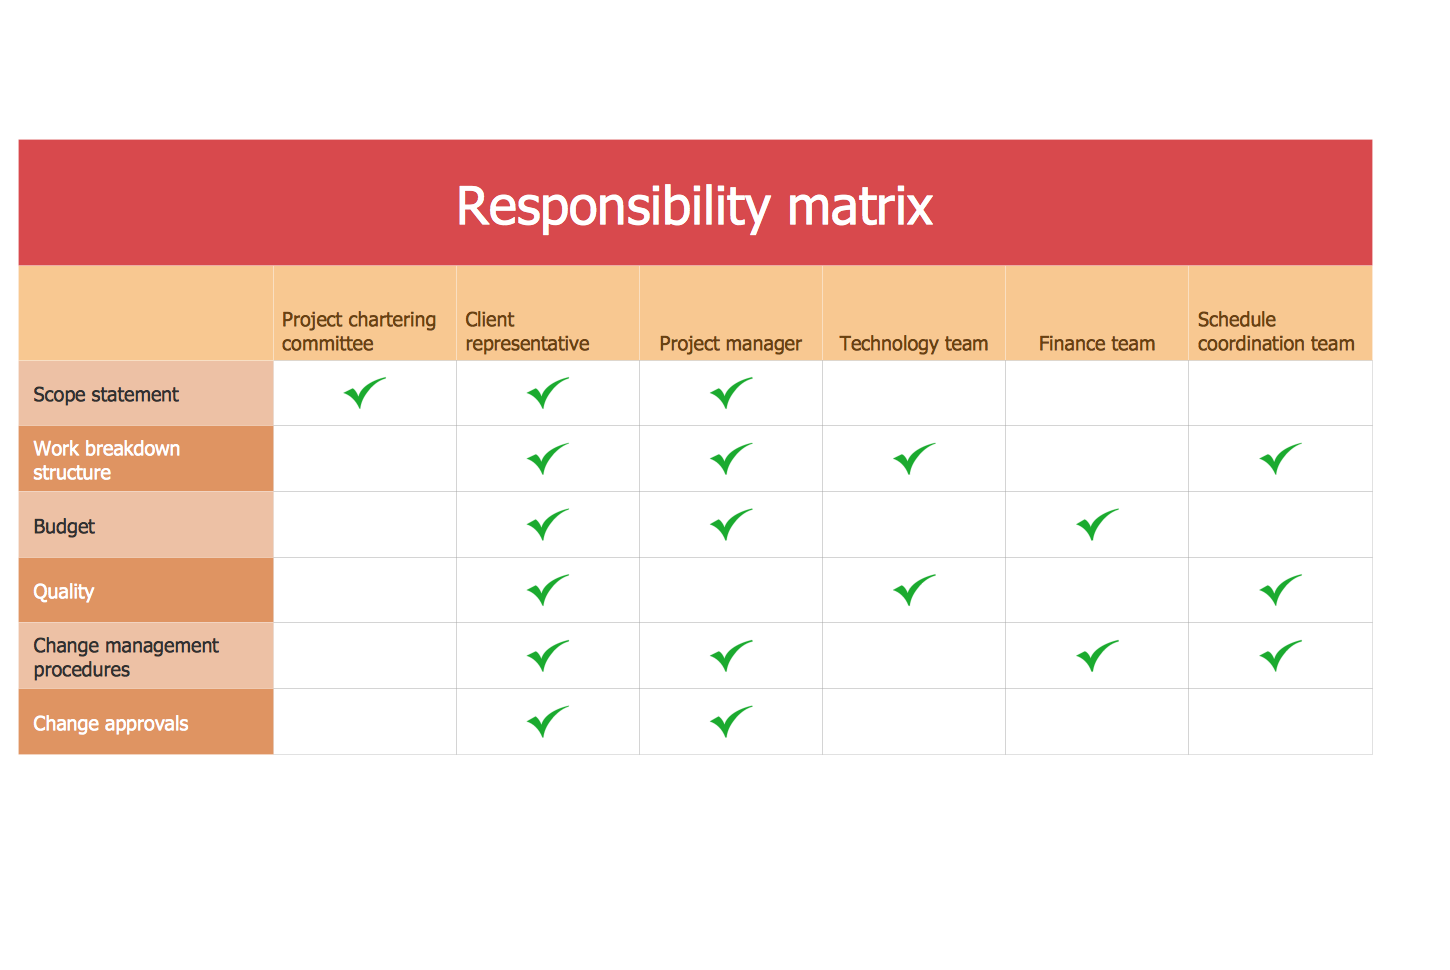 assignment matrix Recap in sum, it's evident that a well organised team is crucial to successfully complete a project a responsibility assignment matrix is advantageous, if not paramount, in achieving this.